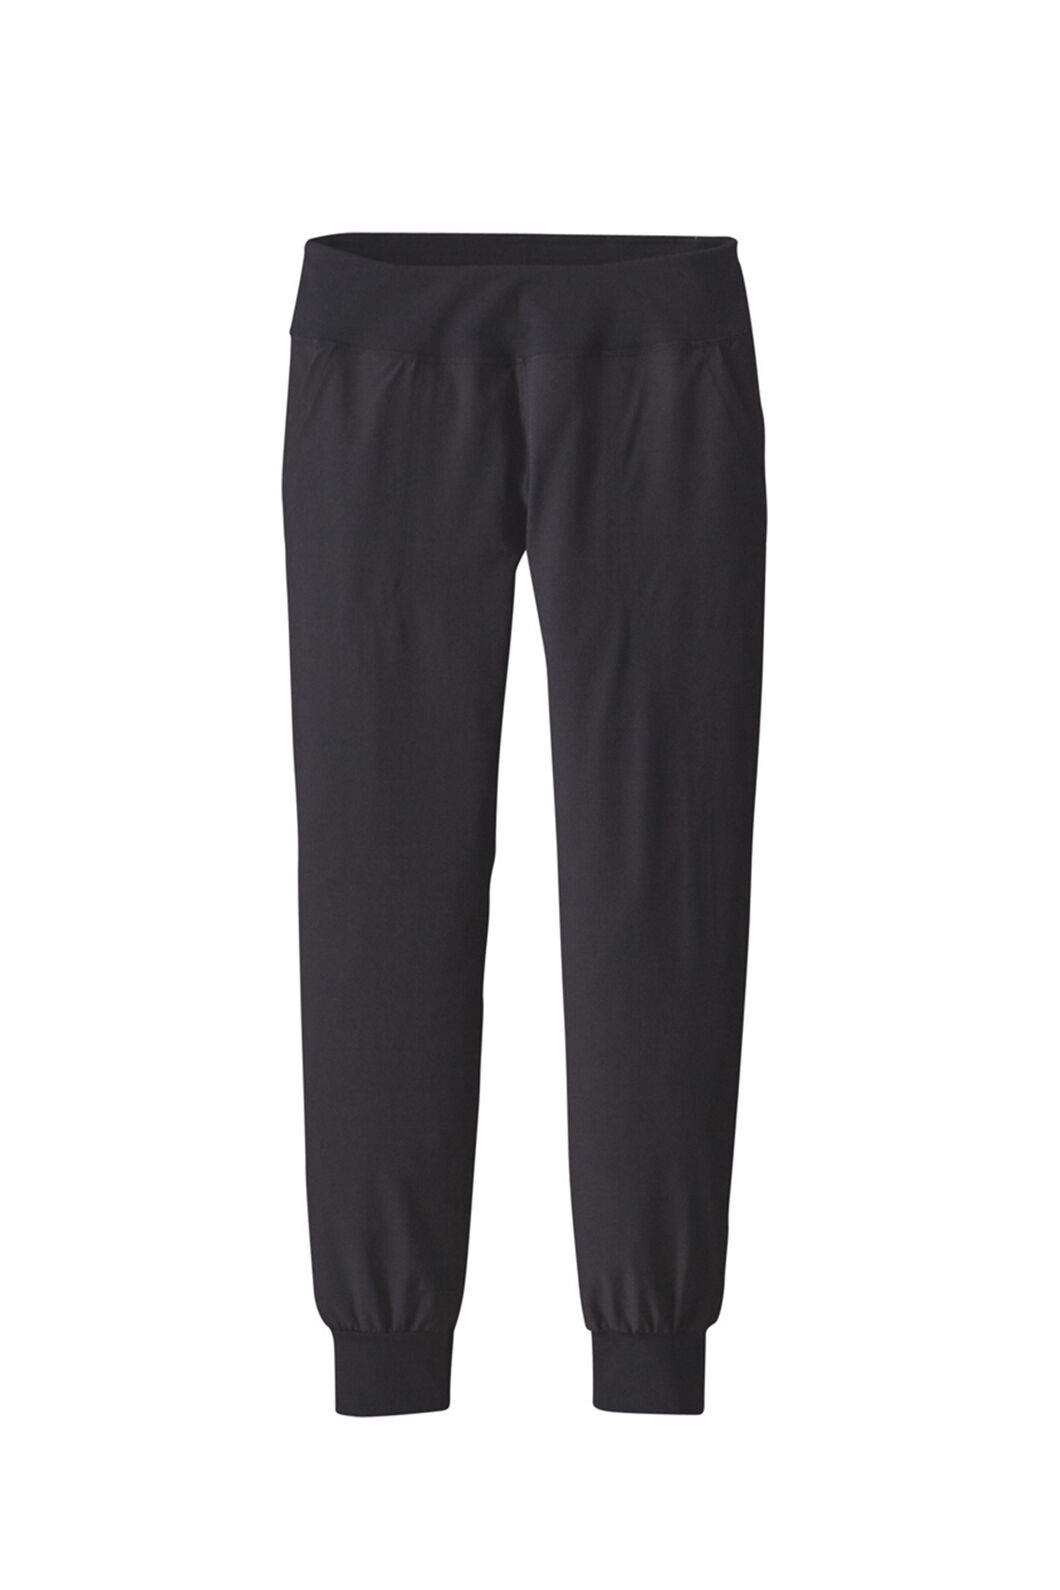 Patagonia Women's Happy Hike Studio Pants, Black, hi-res